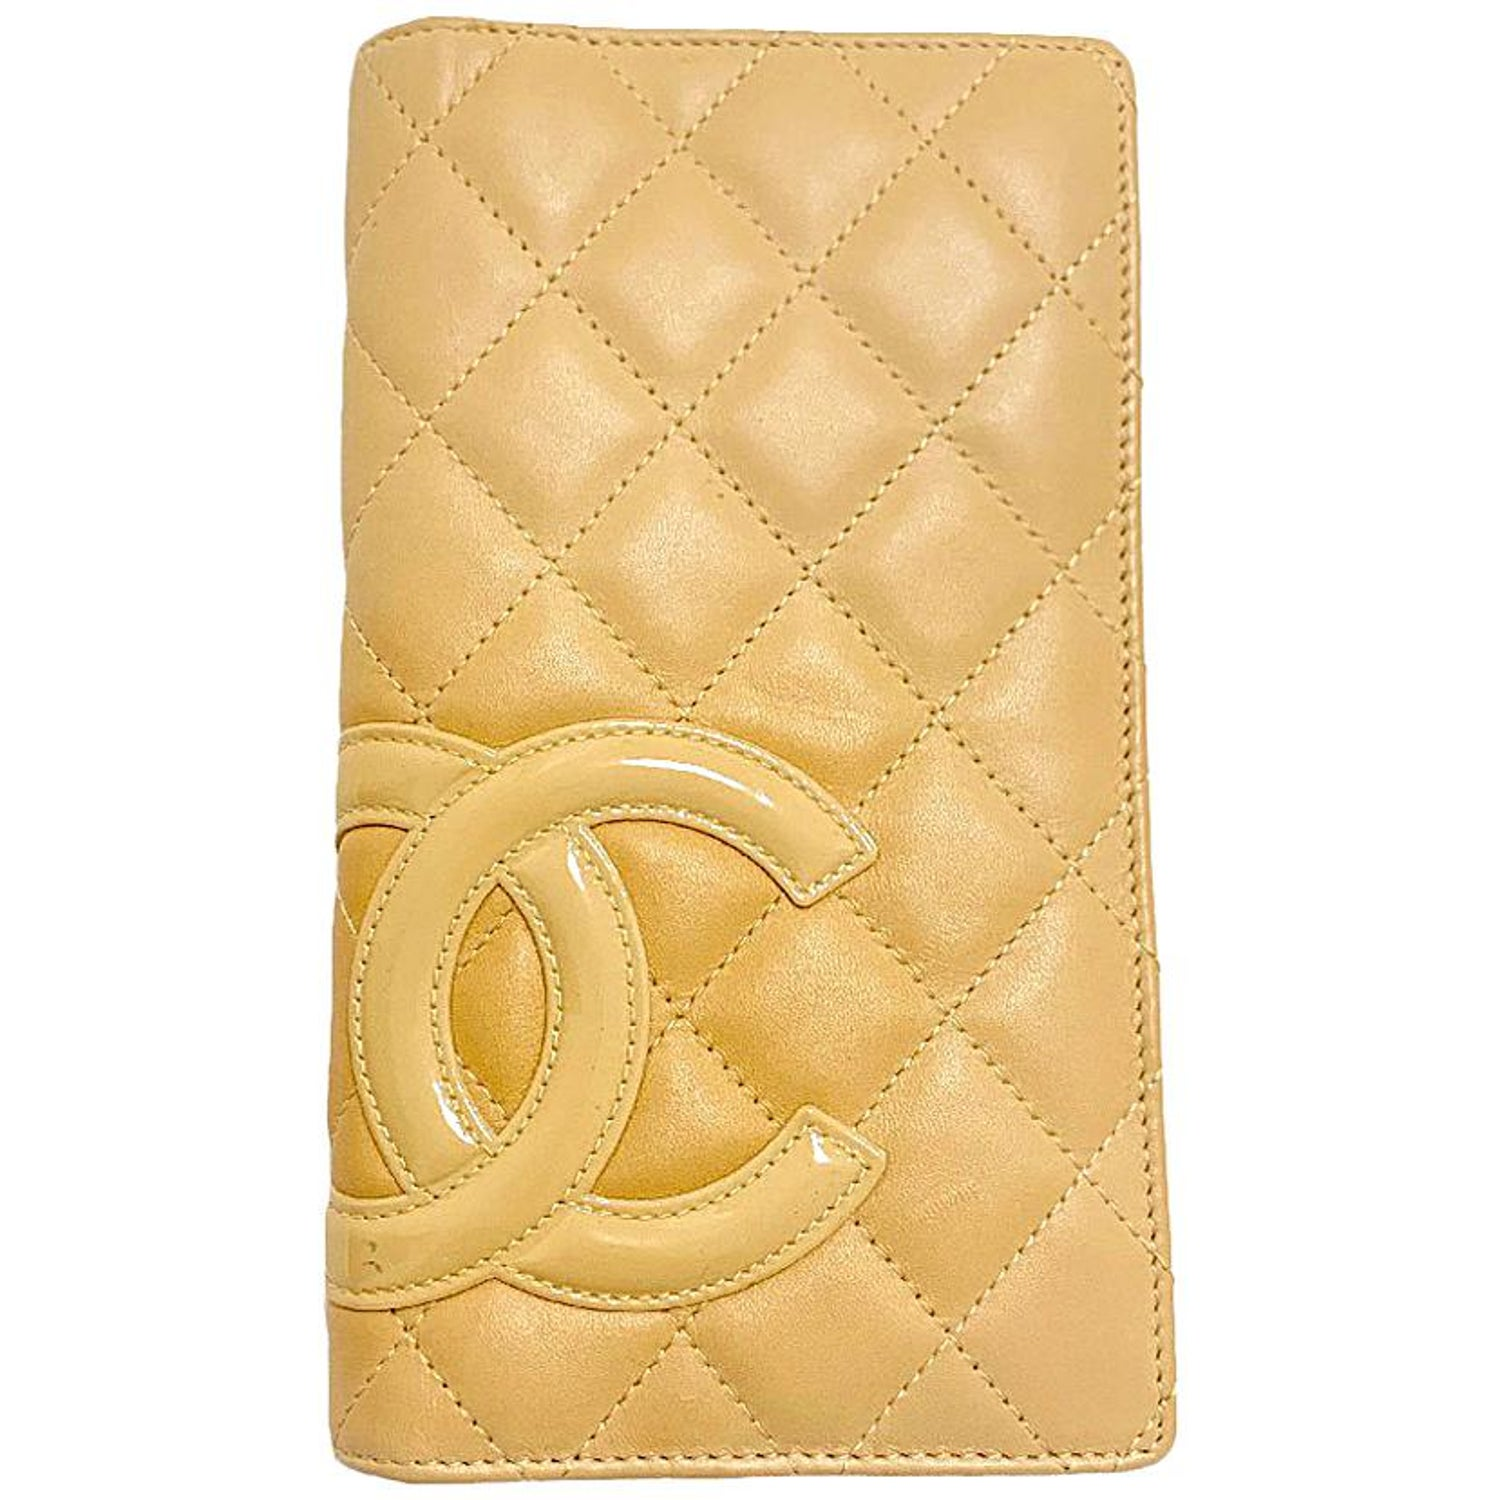 6c5541403381 CAHNEL Cambon Wallet in Beige Quilted Lamb Leather at 1stdibs